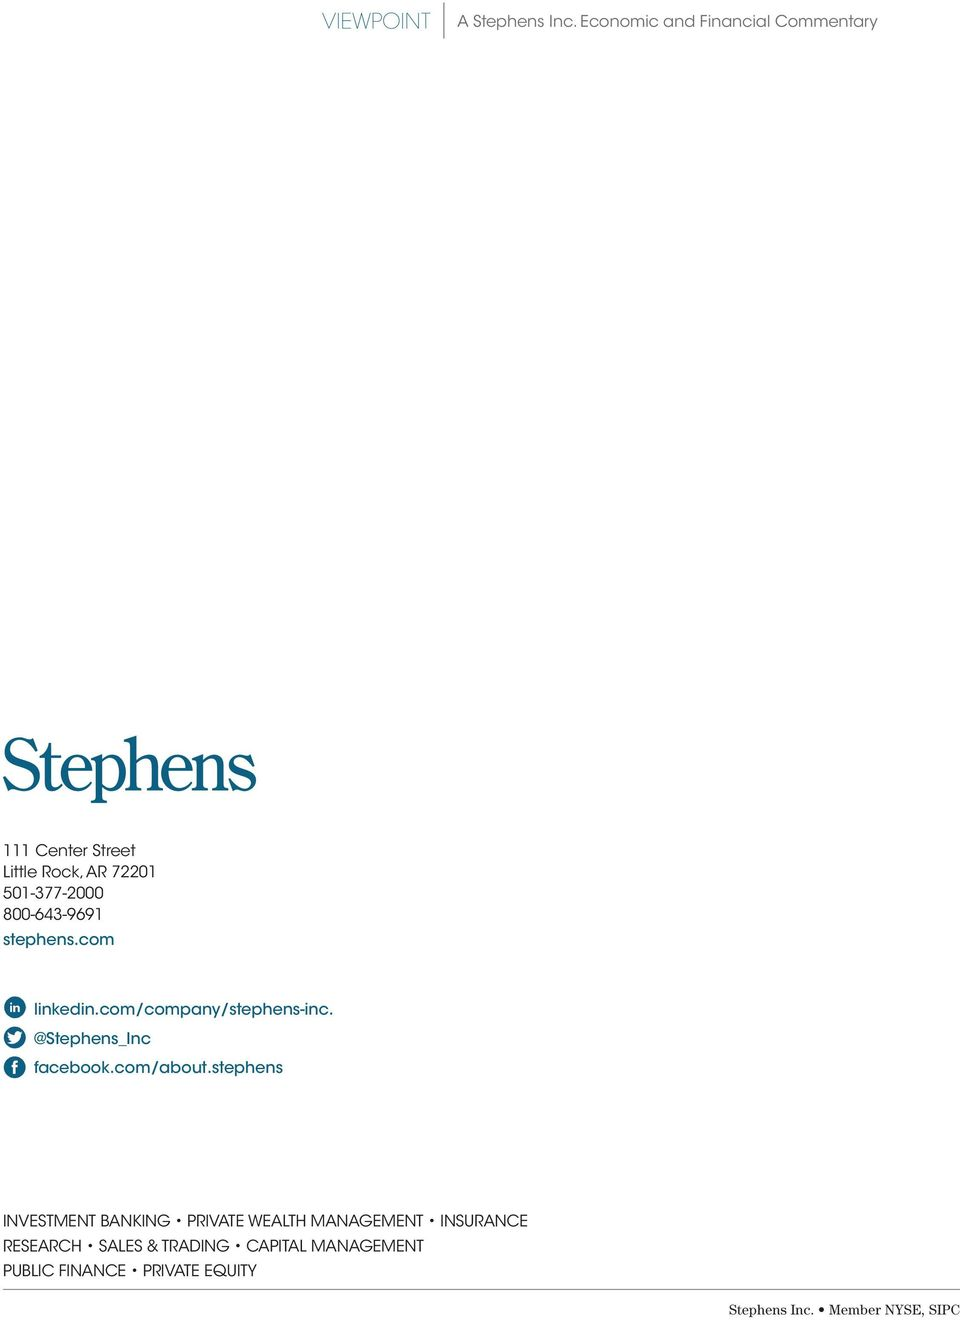 stephens INVESTMENT BANKING PRIVATE WEALTH MANAGEMENT INSURANCE RESEARCH SALES